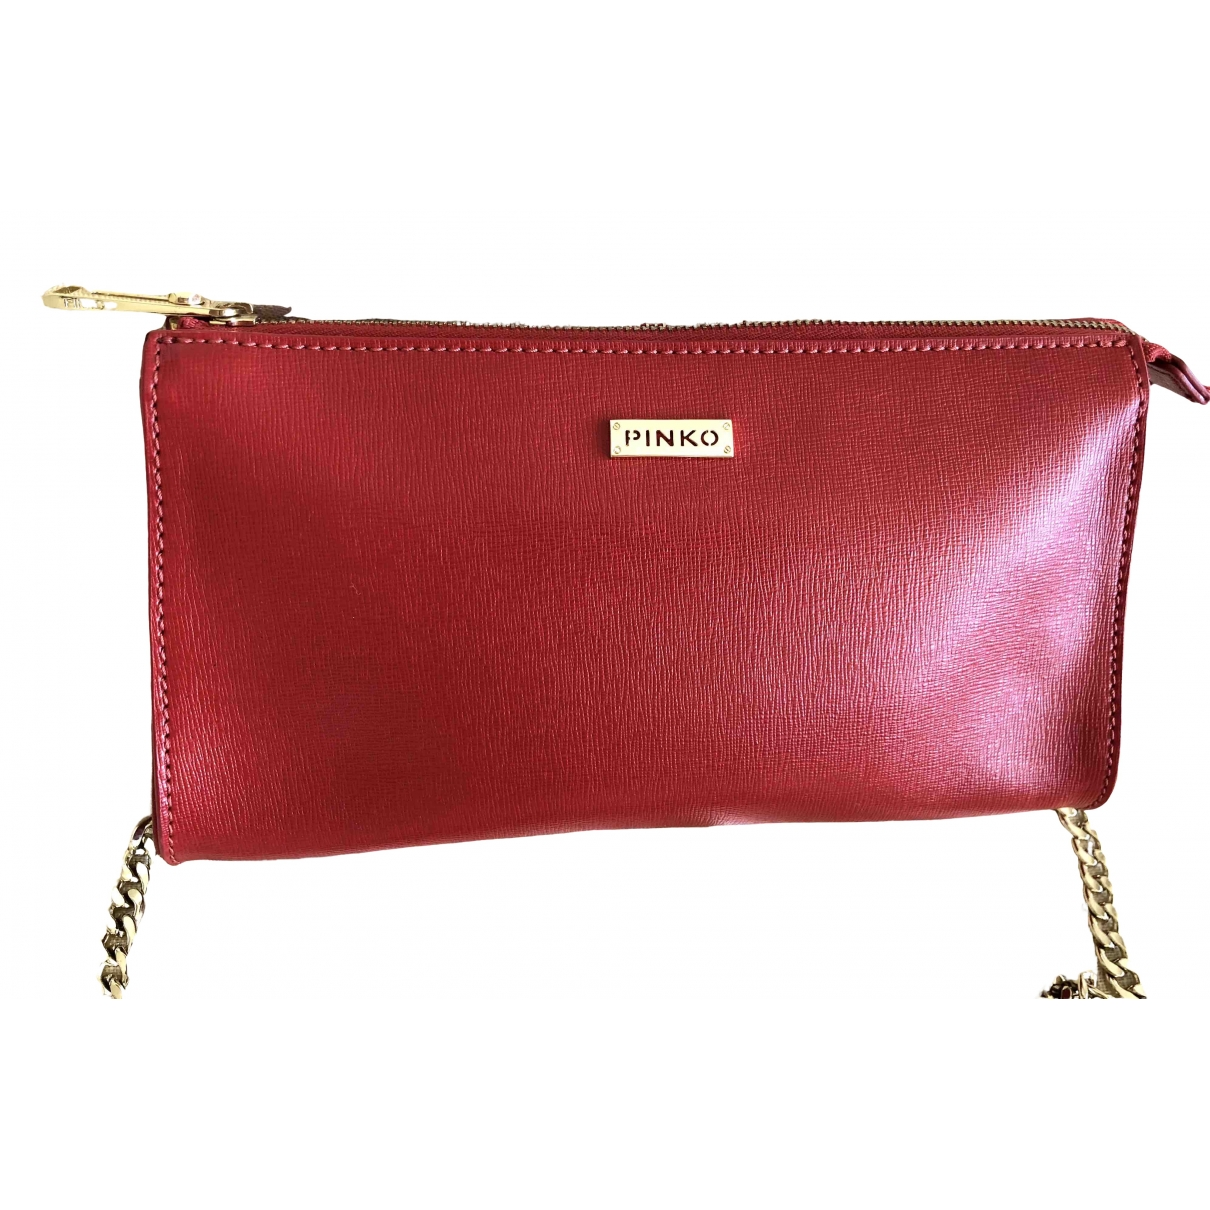 Pinko \N Clutch in  Rot Leder